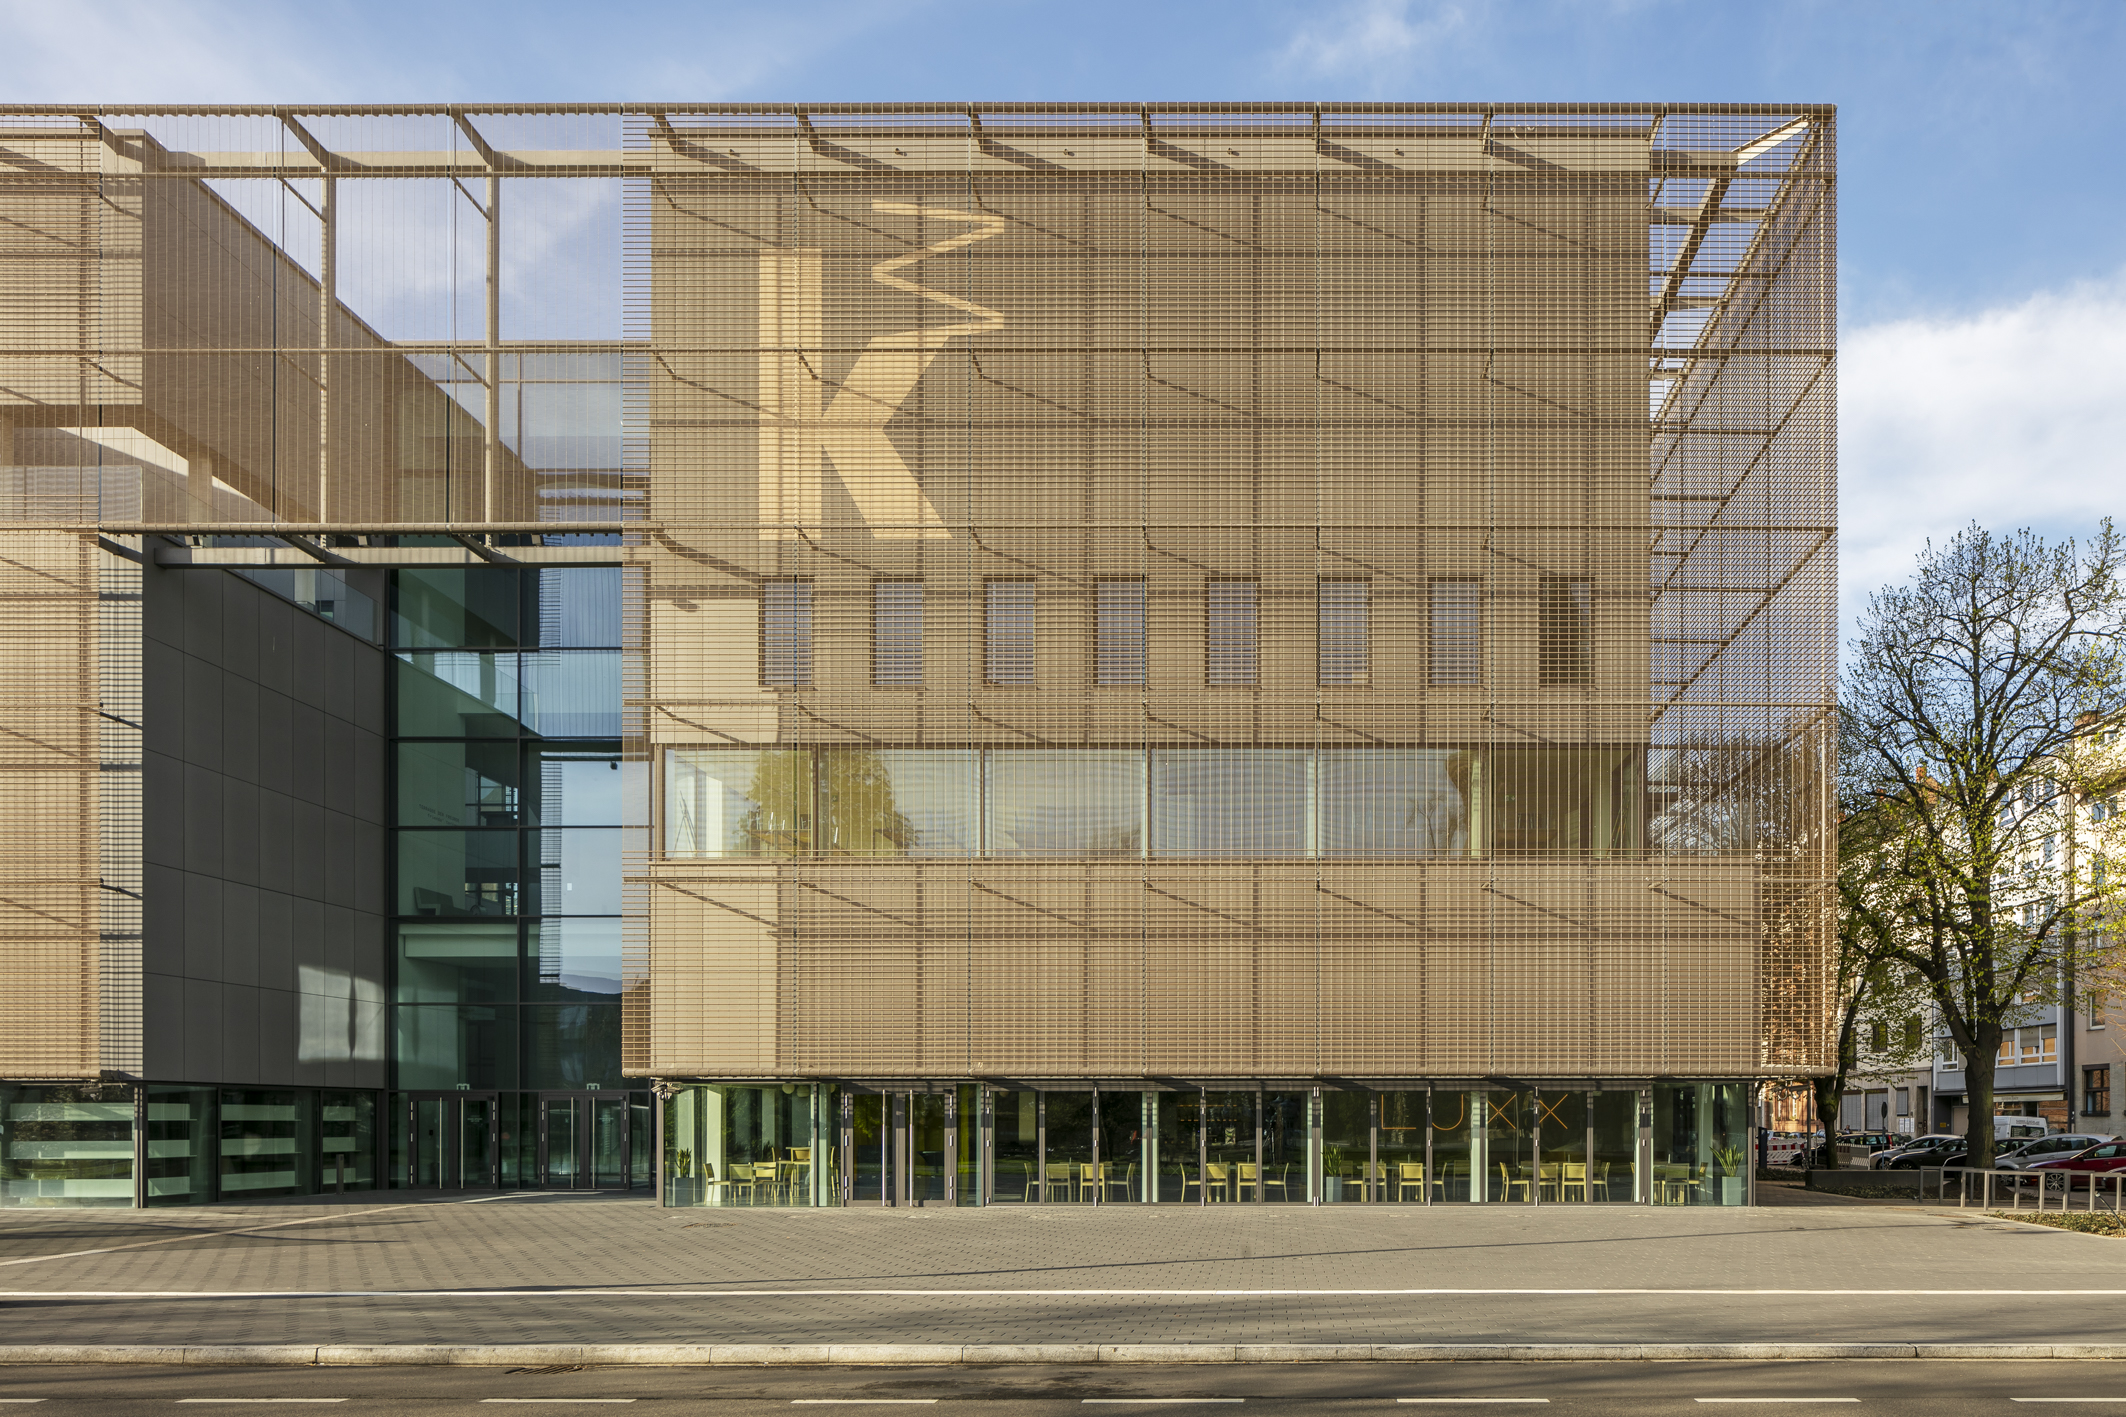 Kunsthalle Mannheim Museum Gkd Media Photos And Videos 4 Archello